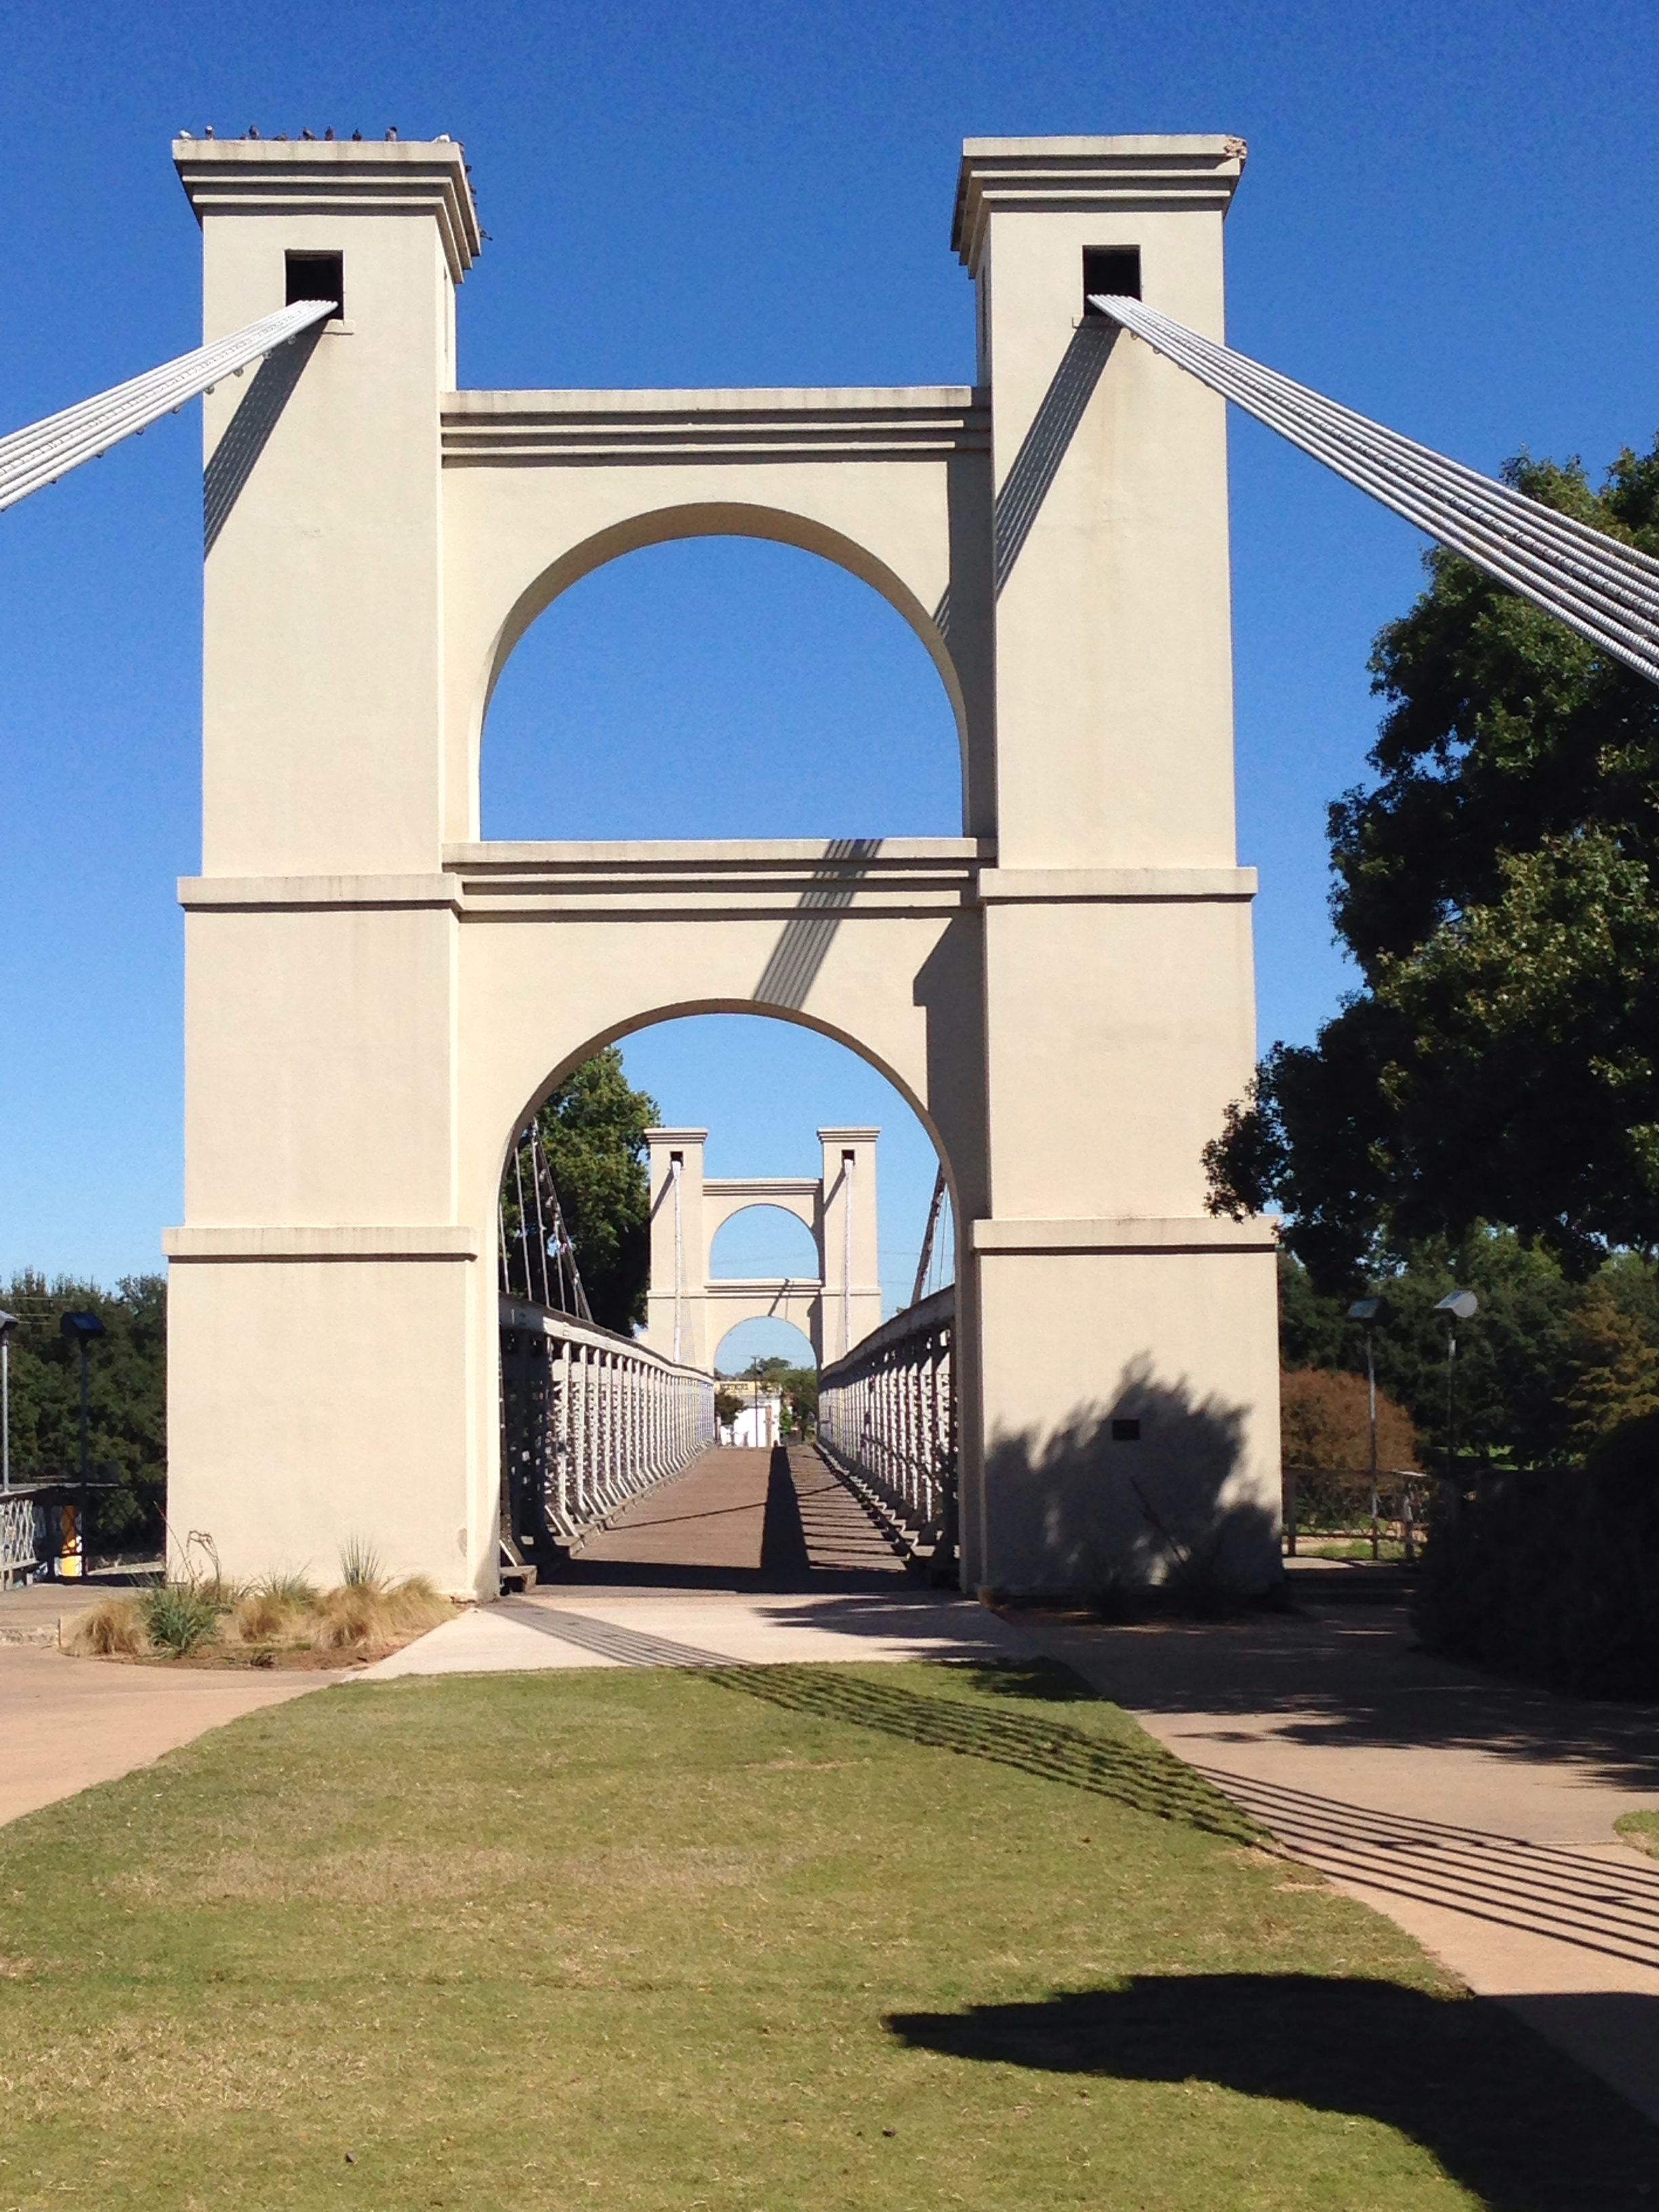 Park Art|My WordPress Blog_Things To Do In Temple Tx With Your Dog